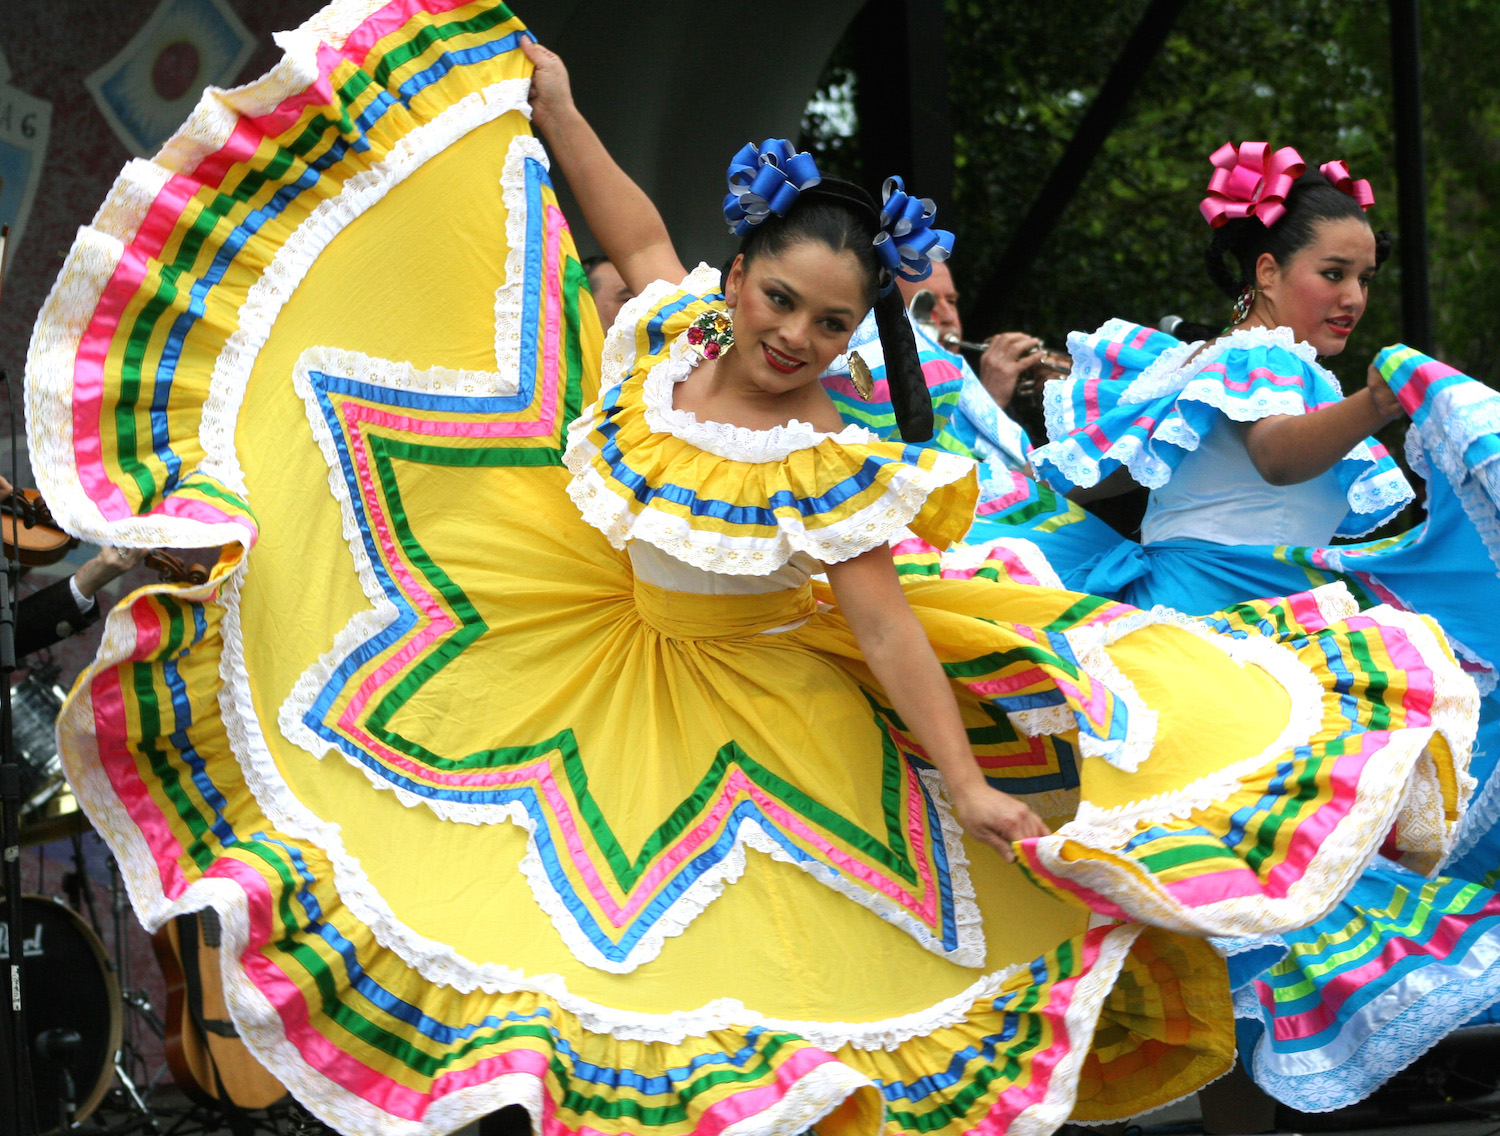 For the First Time in 16 Years, the President Won't Host a Cinco de Mayo Celebration